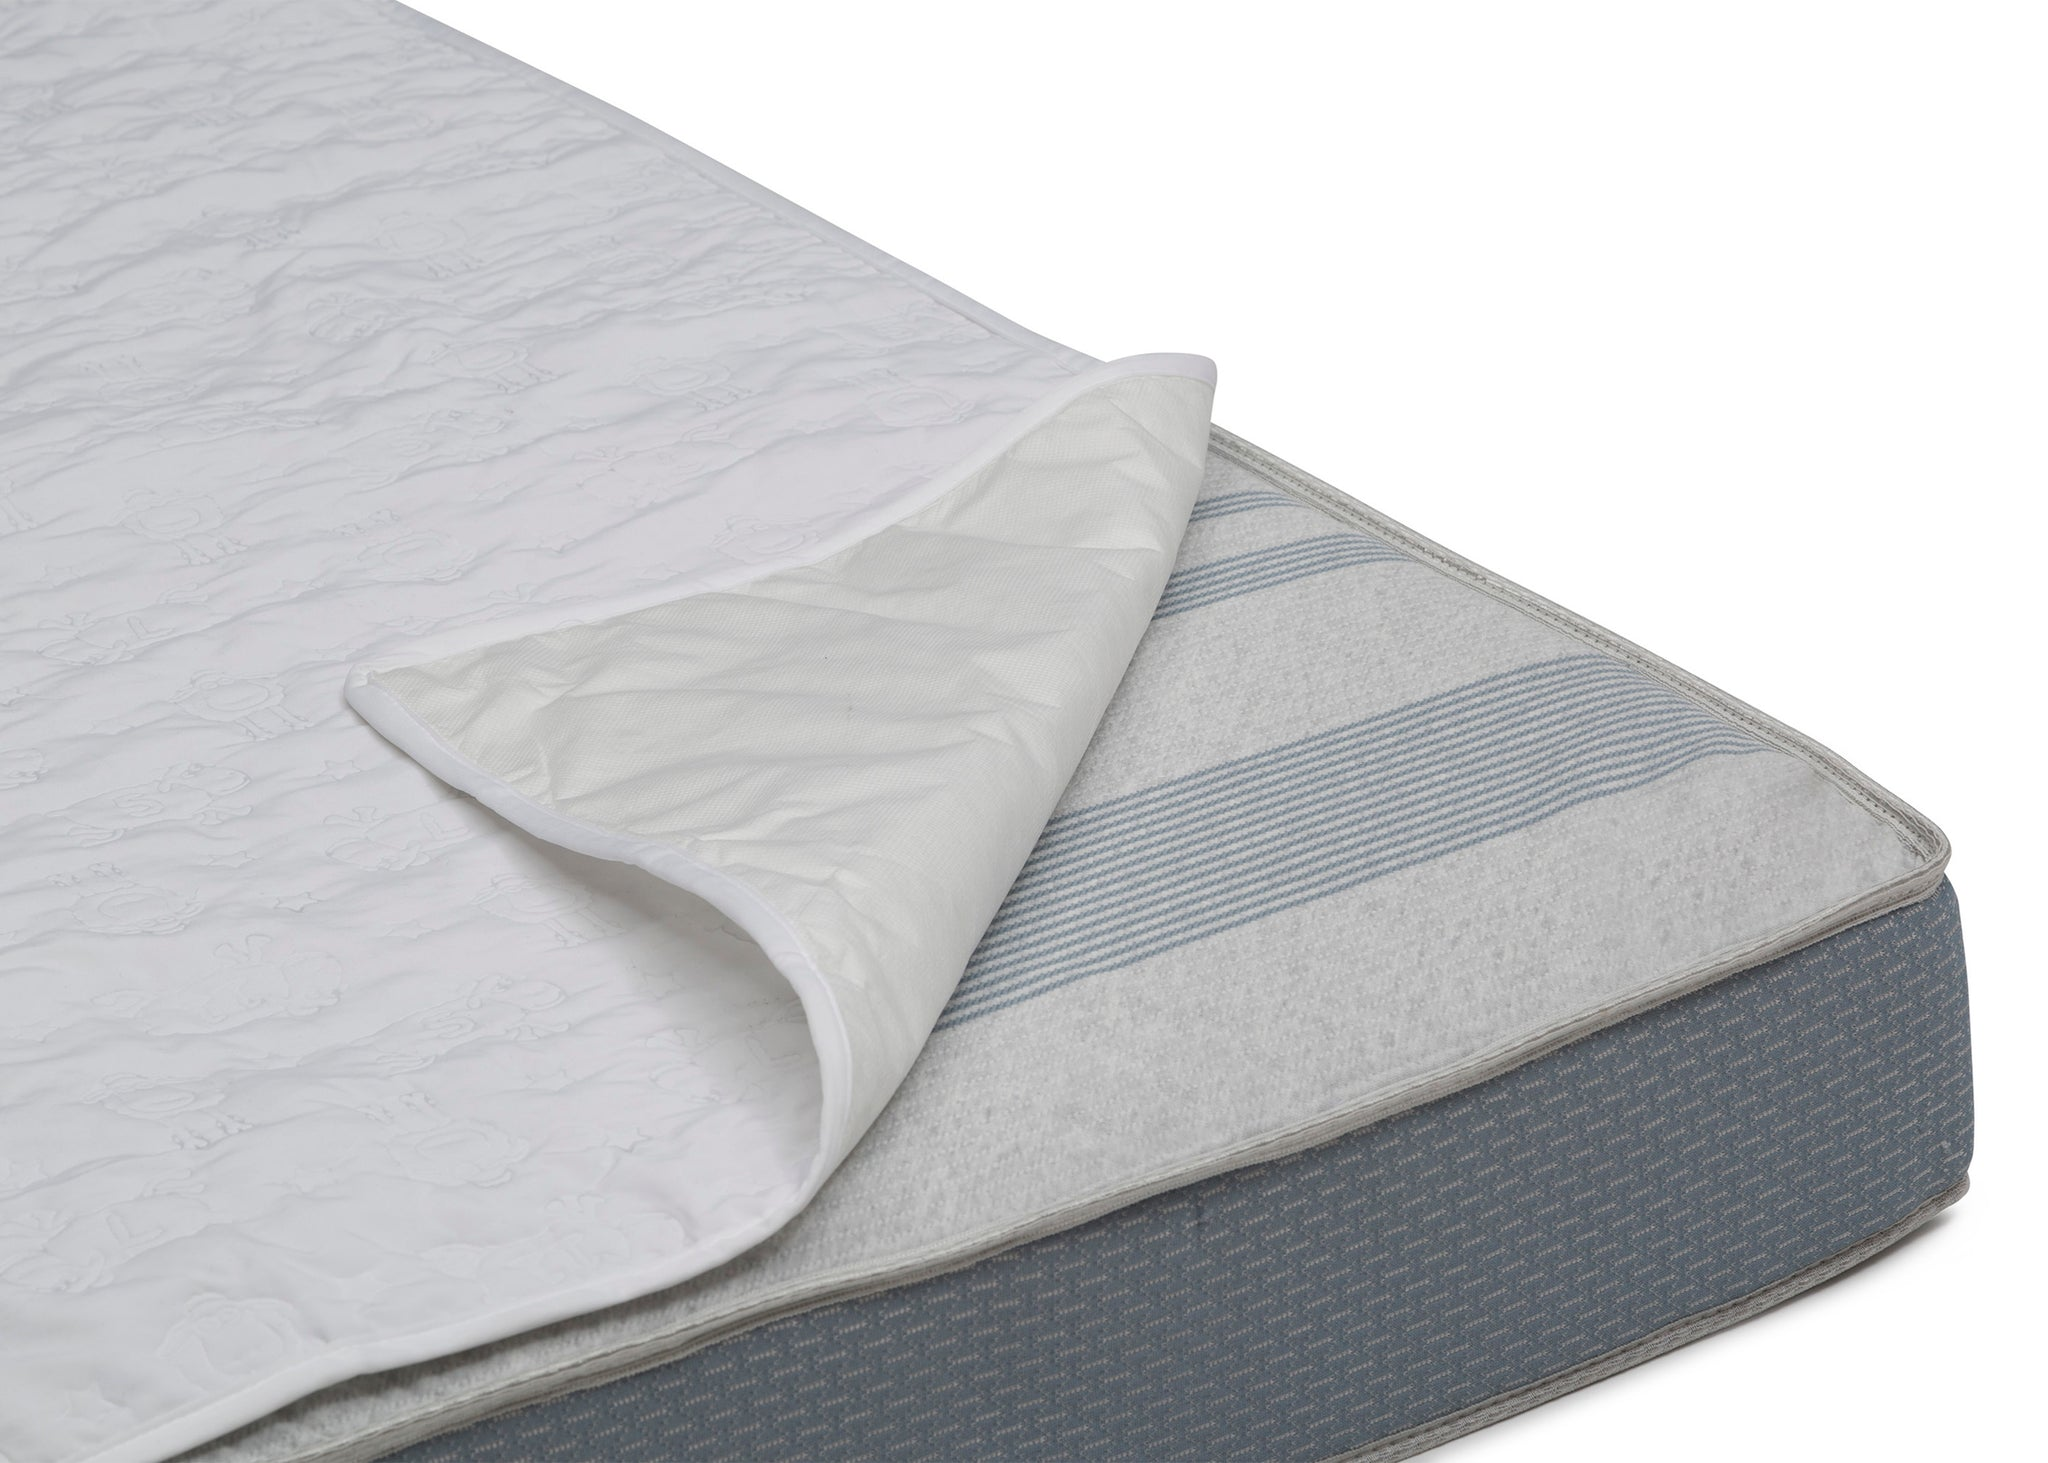 Sertapedic Crib Mattress Liner Pads (Pack of 2) Corner View